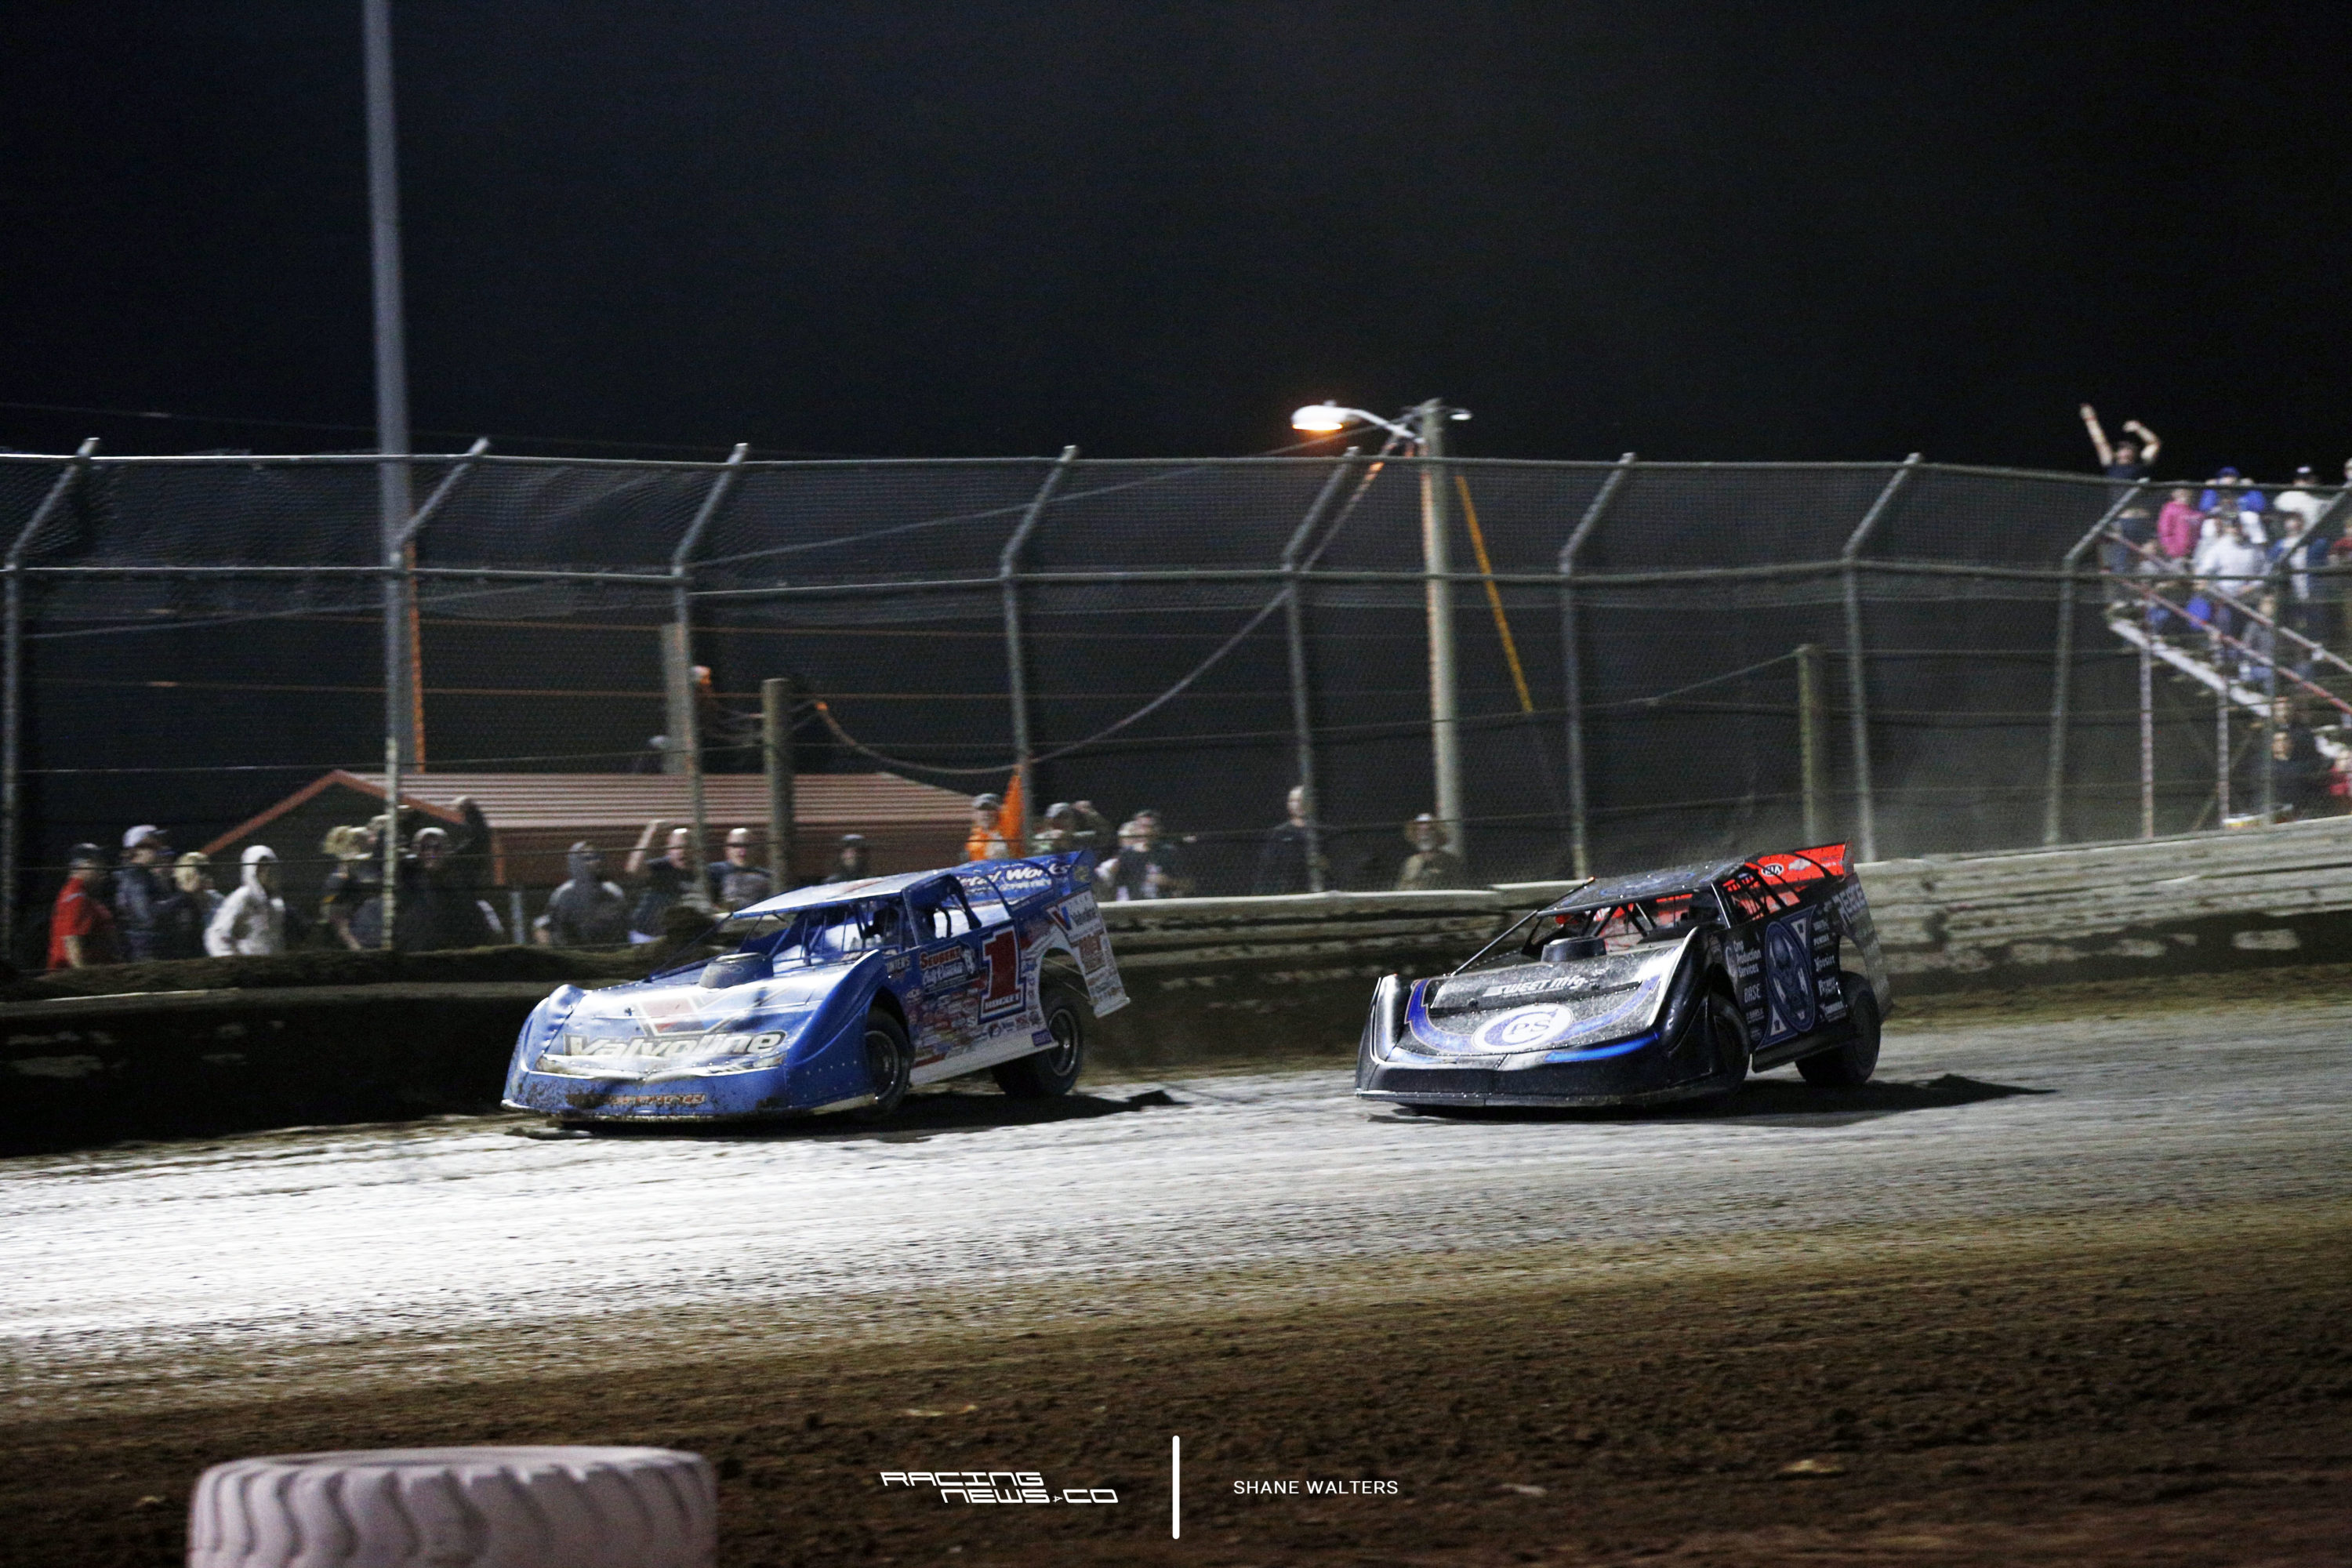 Bubba Raceway Park >> Bubba Raceway Park Winter Nationals Results February 19